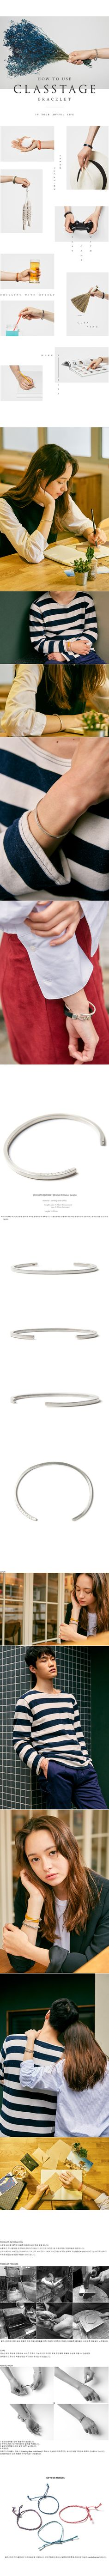 WIZWID:위즈위드 - [CLASSTAGE:클라스티지]Exclusive Design 001 (Silver Bangle)